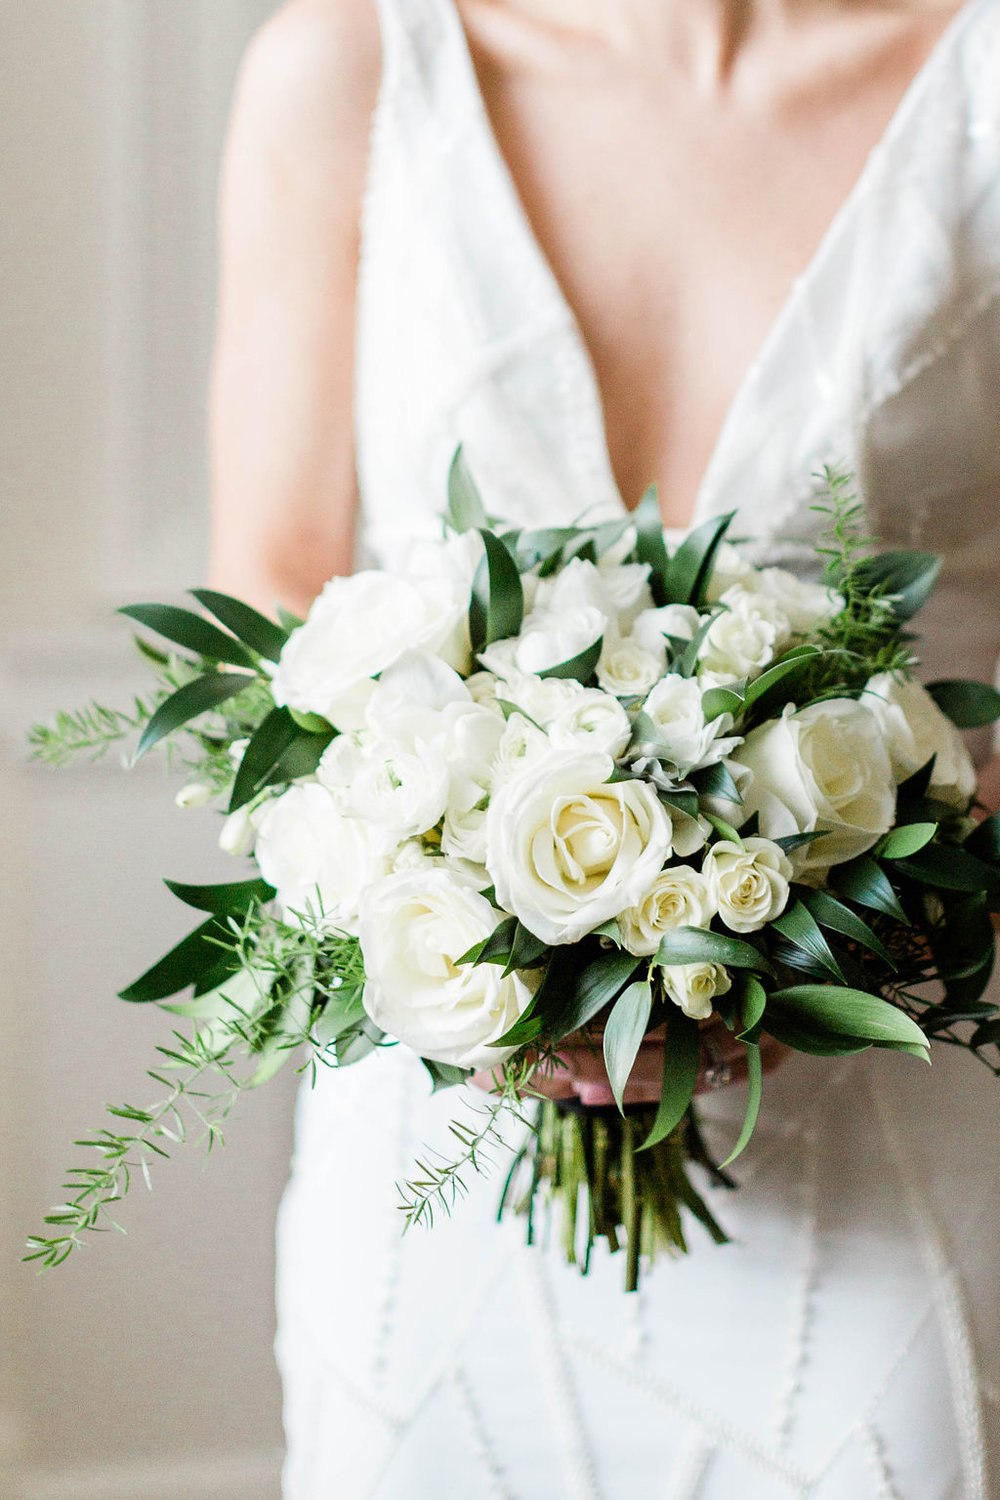 White Rose Bouquet | Bridal Bouquet | Chicago History Museum | Black and White Wedding | Black Tie Wedding | Your Day by MK | Chicago Wedding Planner |